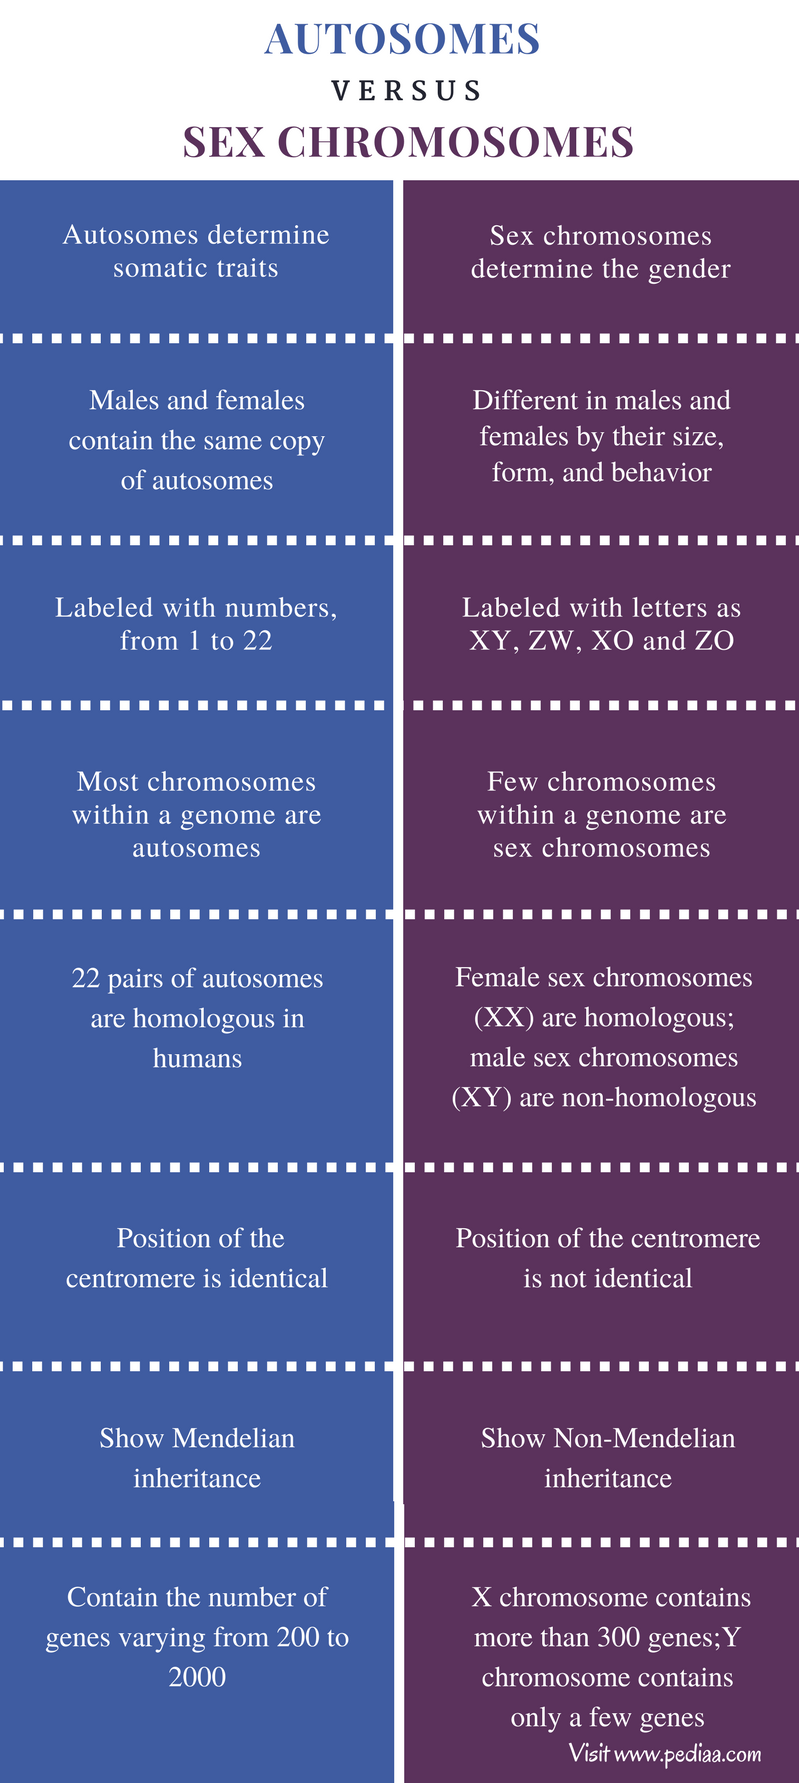 Difference Between Autosomes and Sex Chromosomes - Comparison Summary